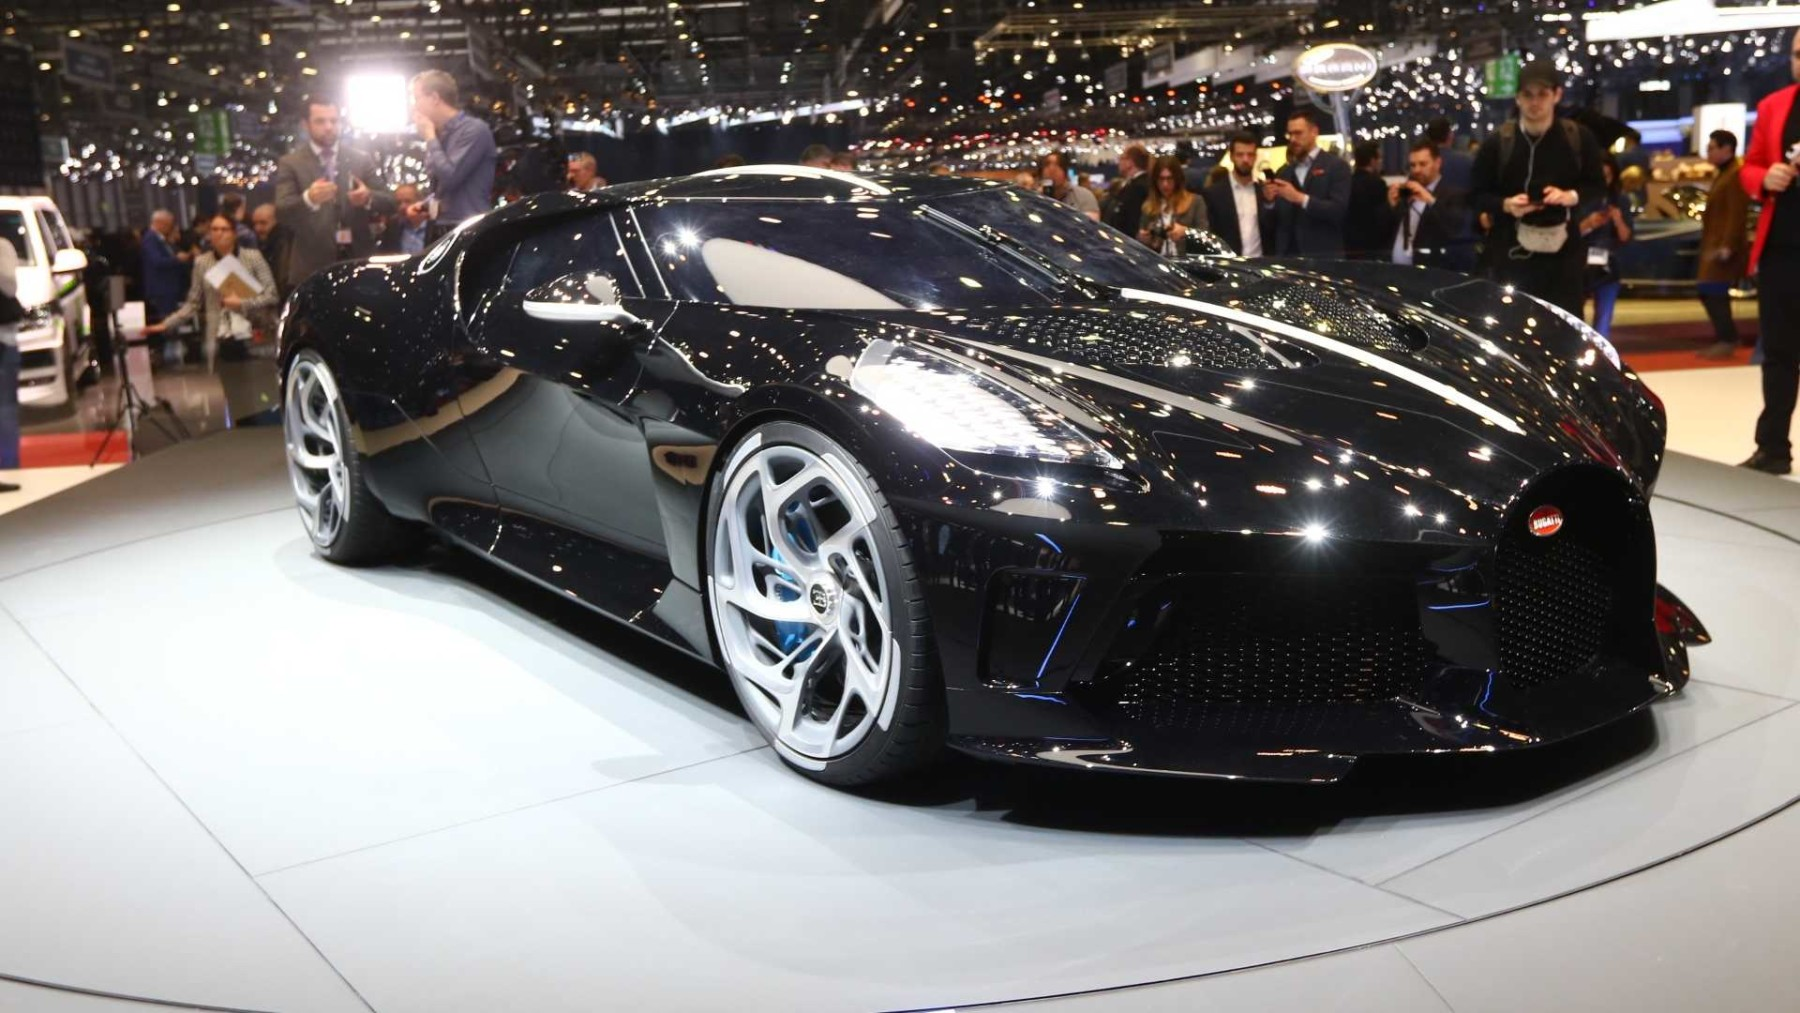 Bugatti La Voiture Noire - The Big Picture